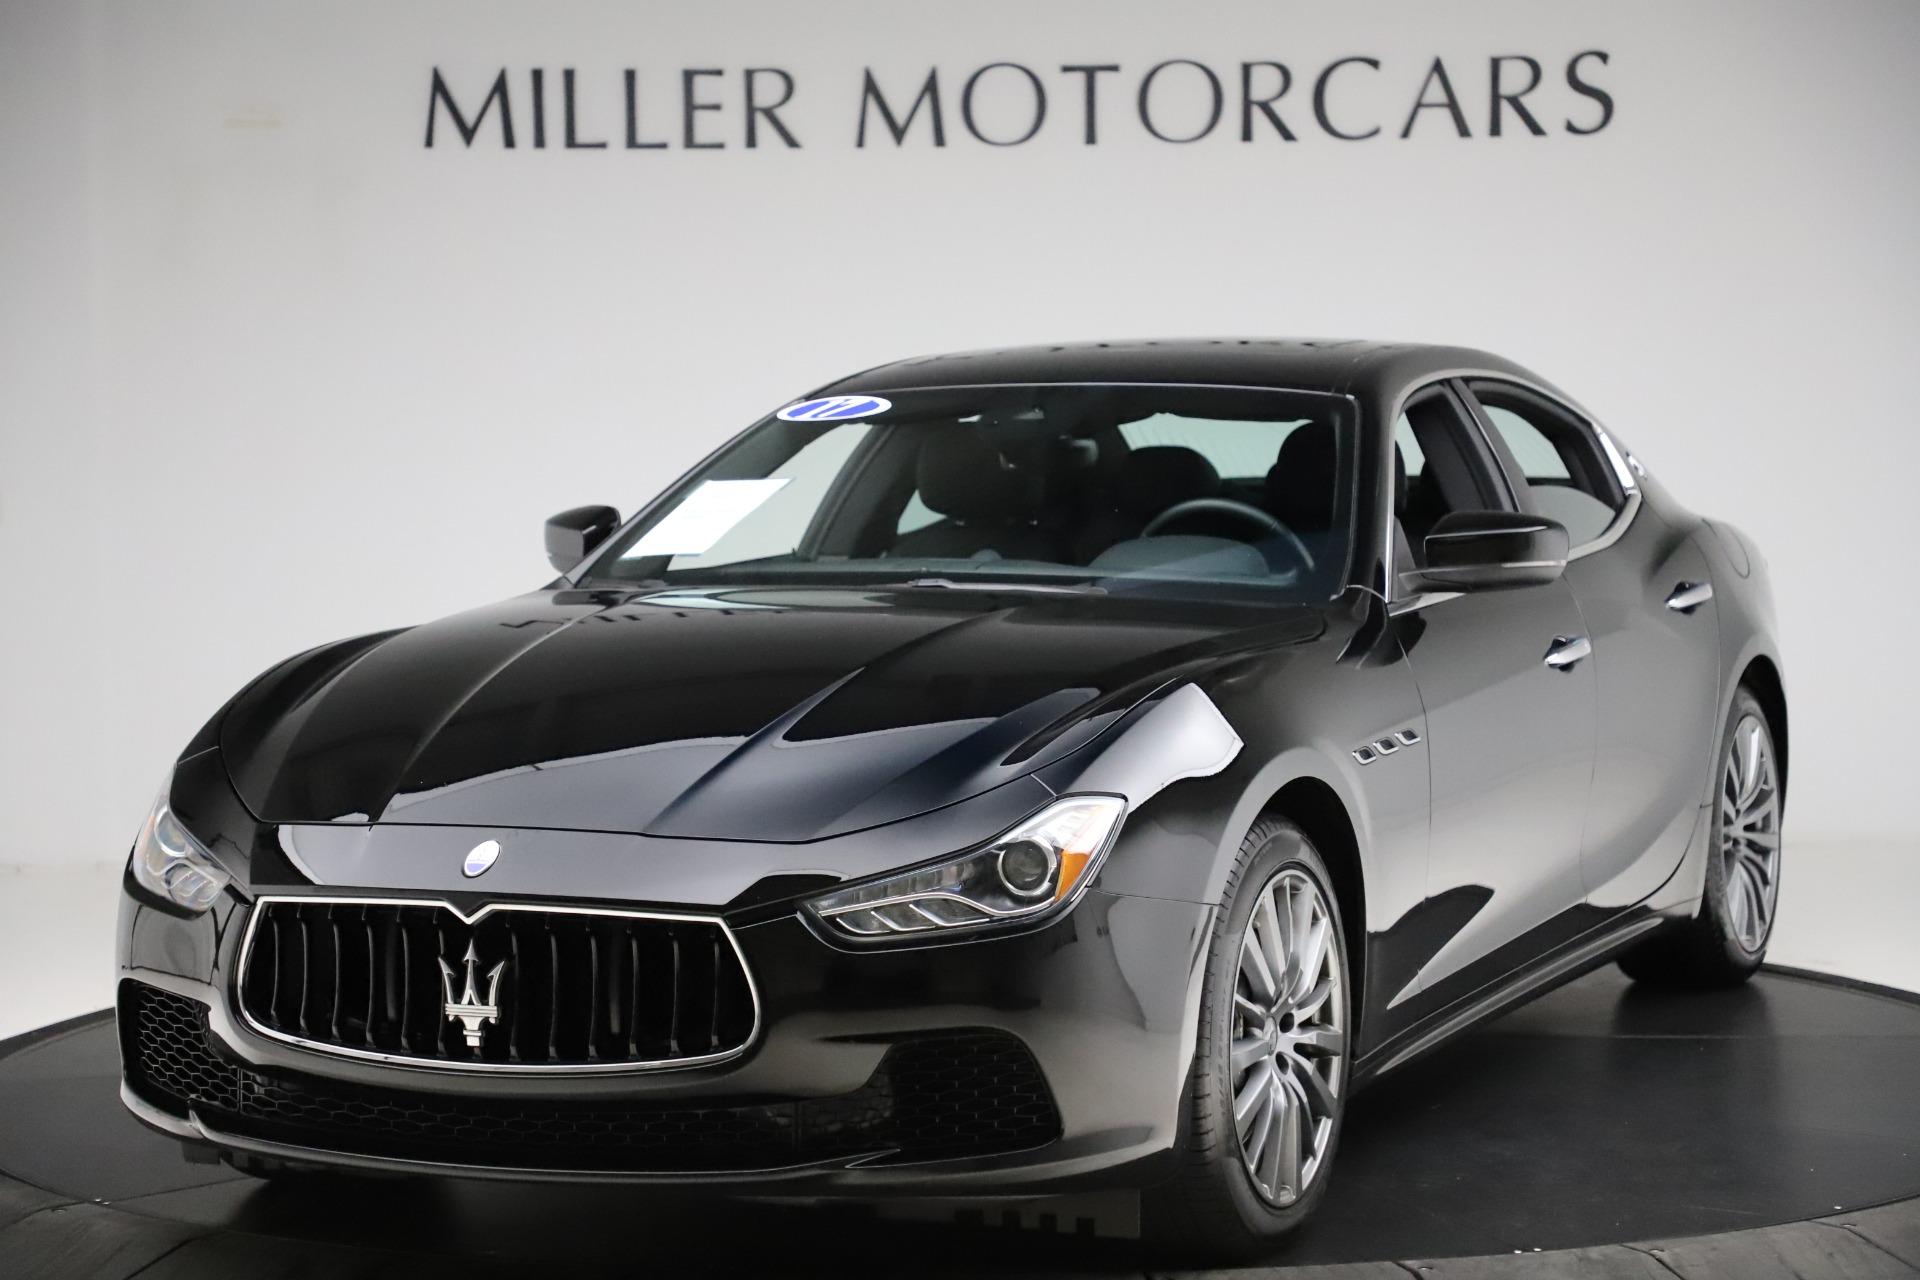 Used 2017 Maserati Ghibli S Q4 for sale $41,900 at Rolls-Royce Motor Cars Greenwich in Greenwich CT 06830 1